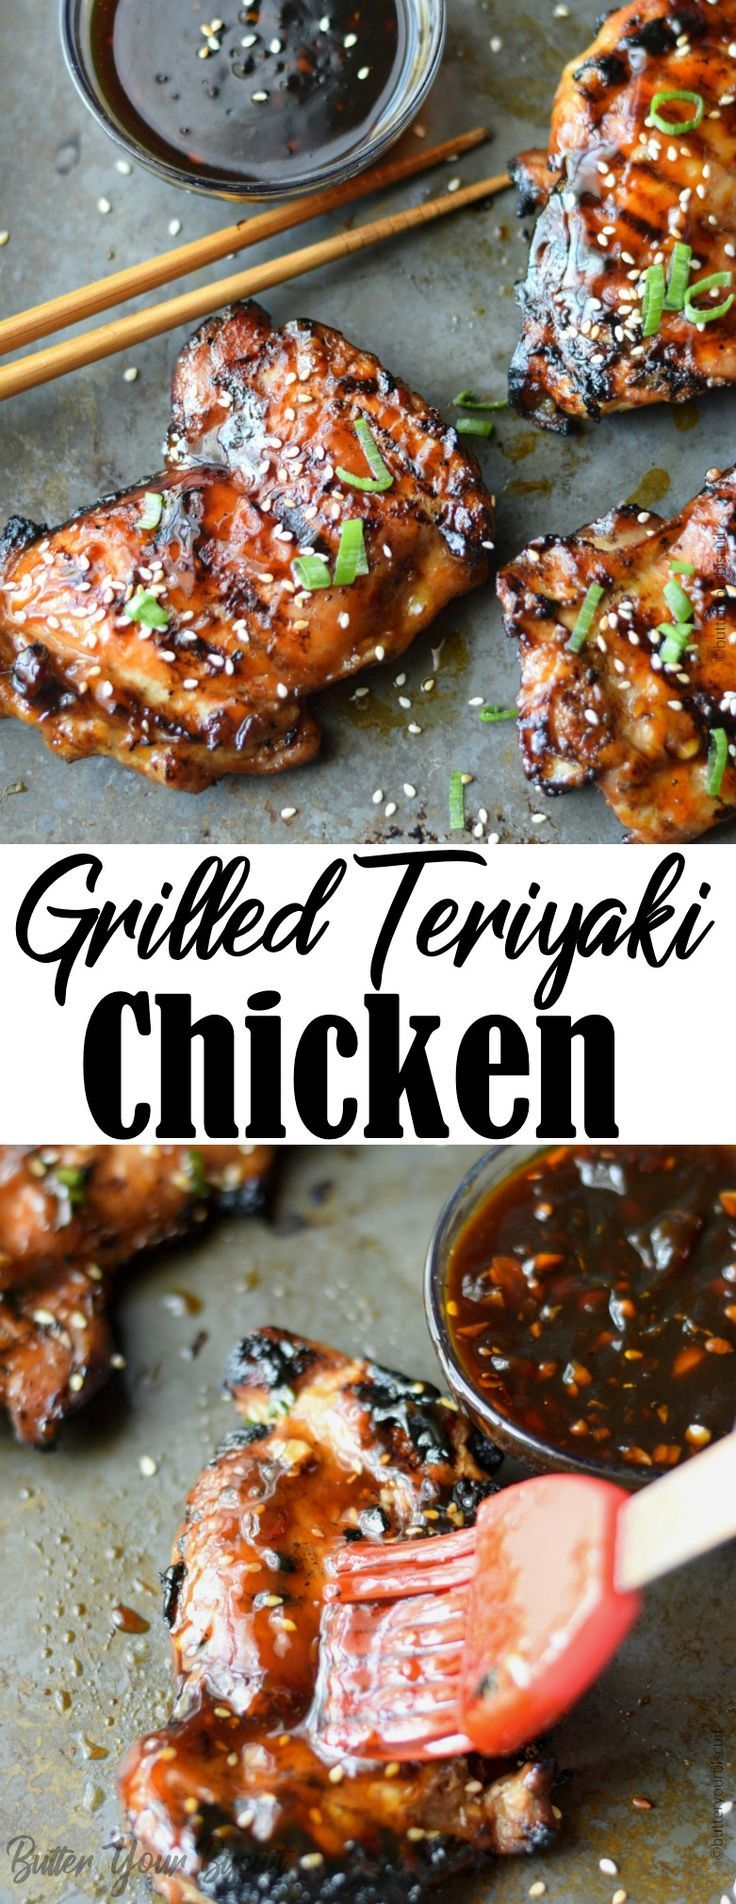 Grilled Teriyaki Chicken Recipe Butter Your Biscuit ...